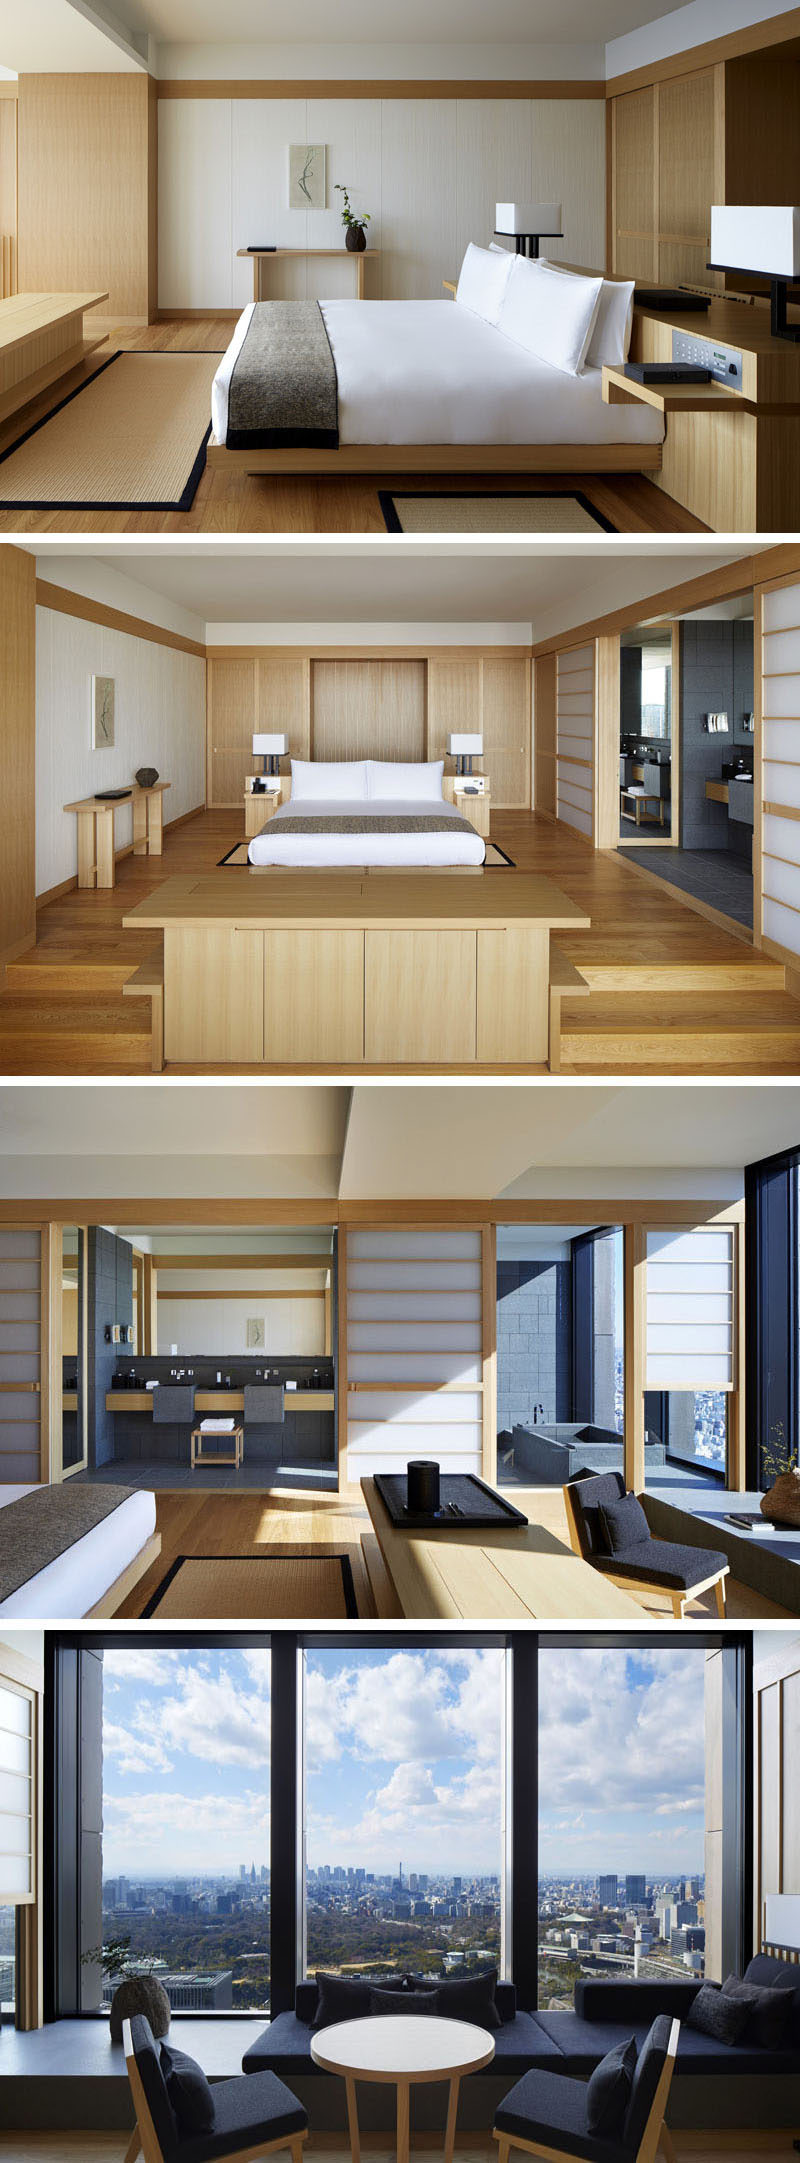 Hotel Room Designs: How-to Mix Contemporary Interior Design With Elements Of